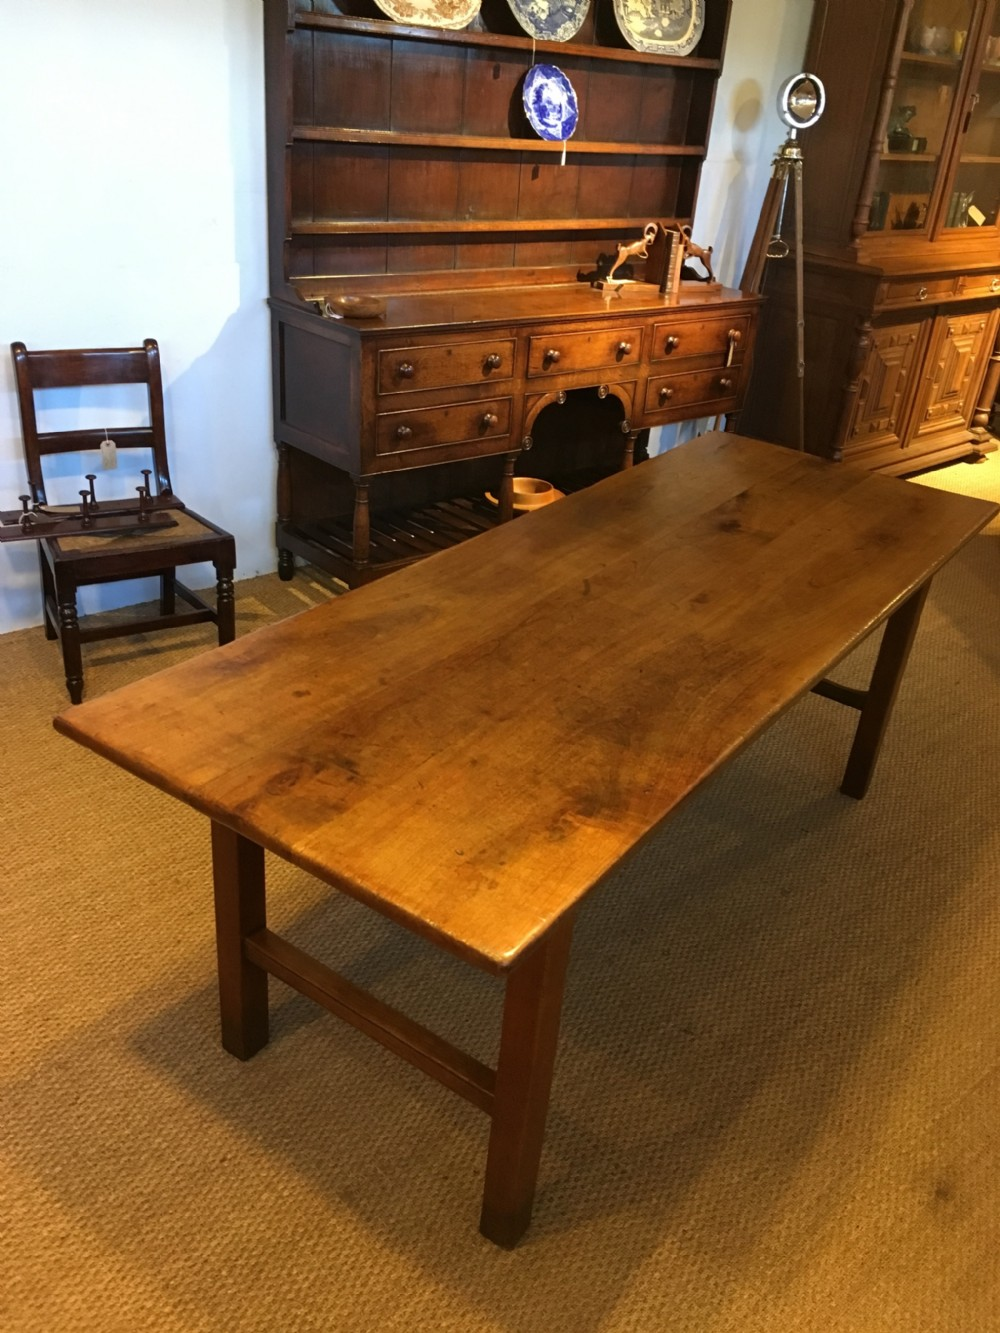 19th century cherrywood farmhouse table